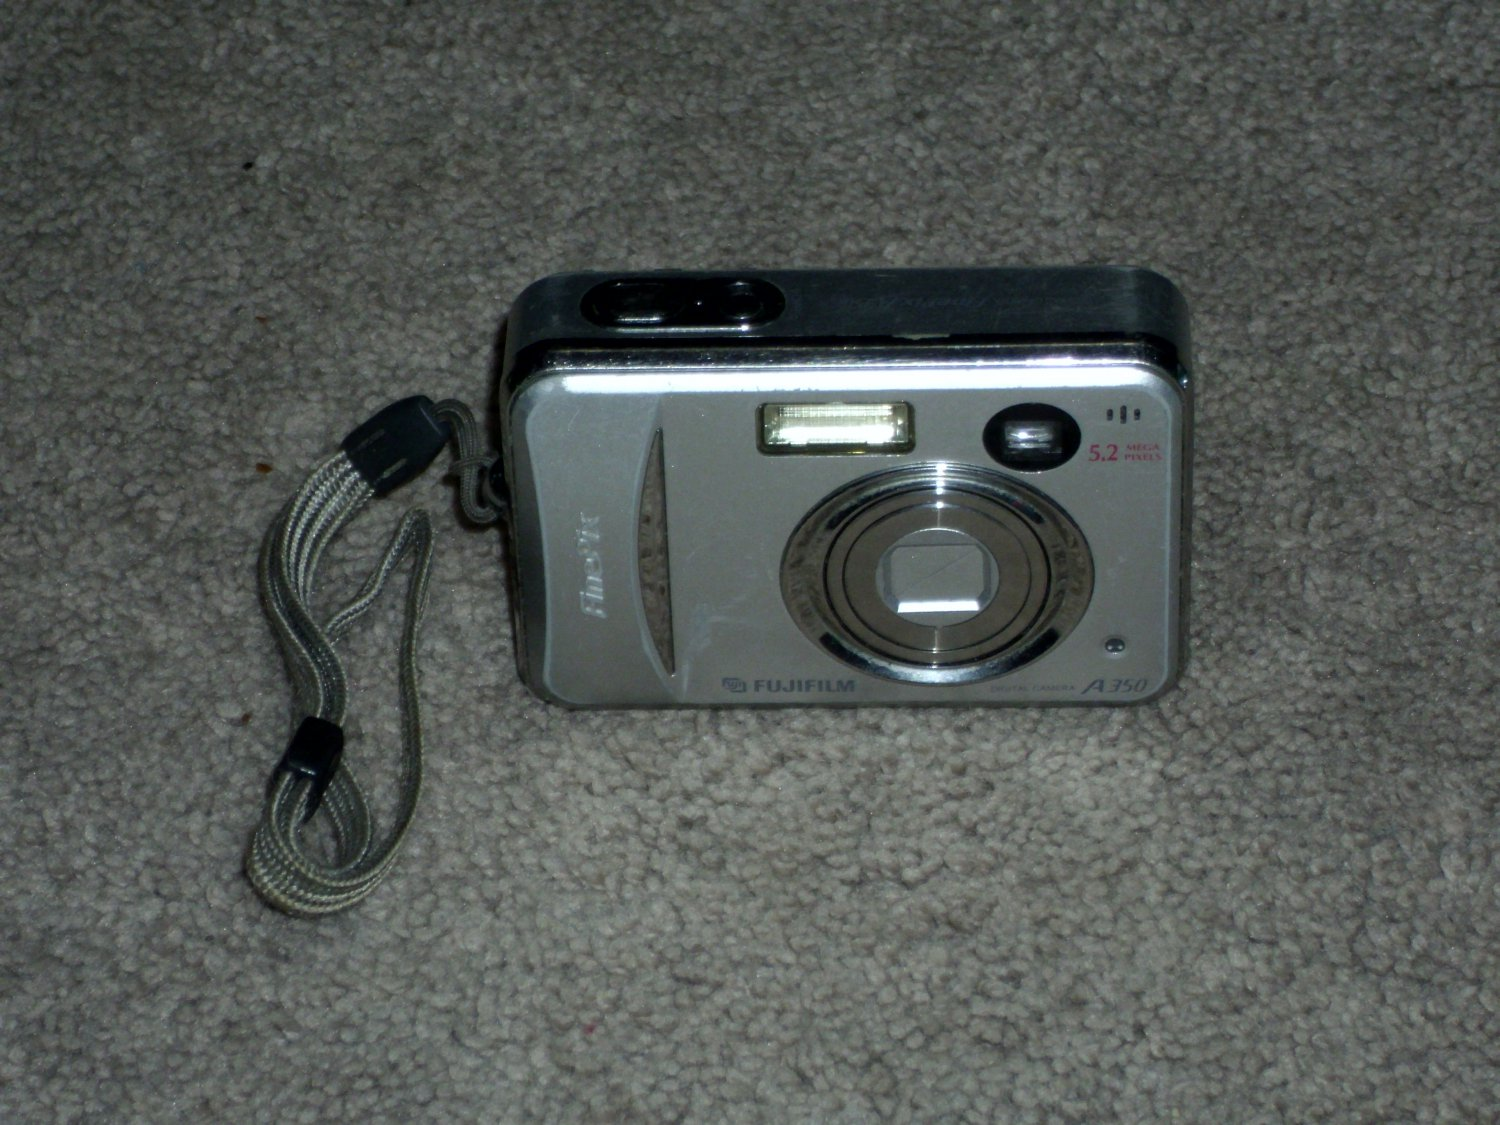 FujiFilm A350 Digital Camera 5.2 Mega Pixels